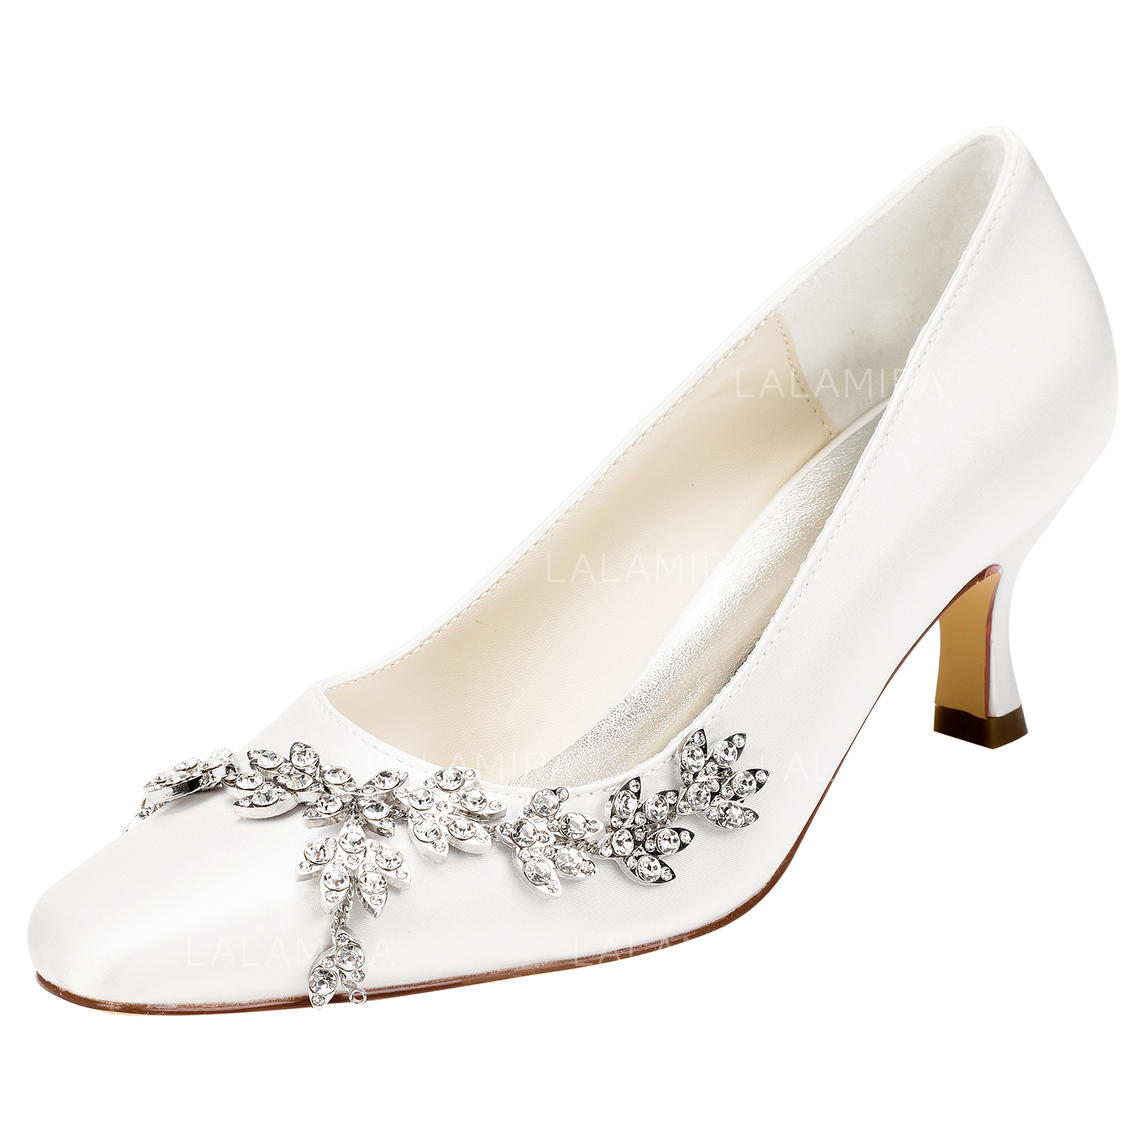 0c2e38fde4cd Women s Pumps Stiletto Heel Satin With Crystal Wedding Shoes (047206766). Loading  zoom